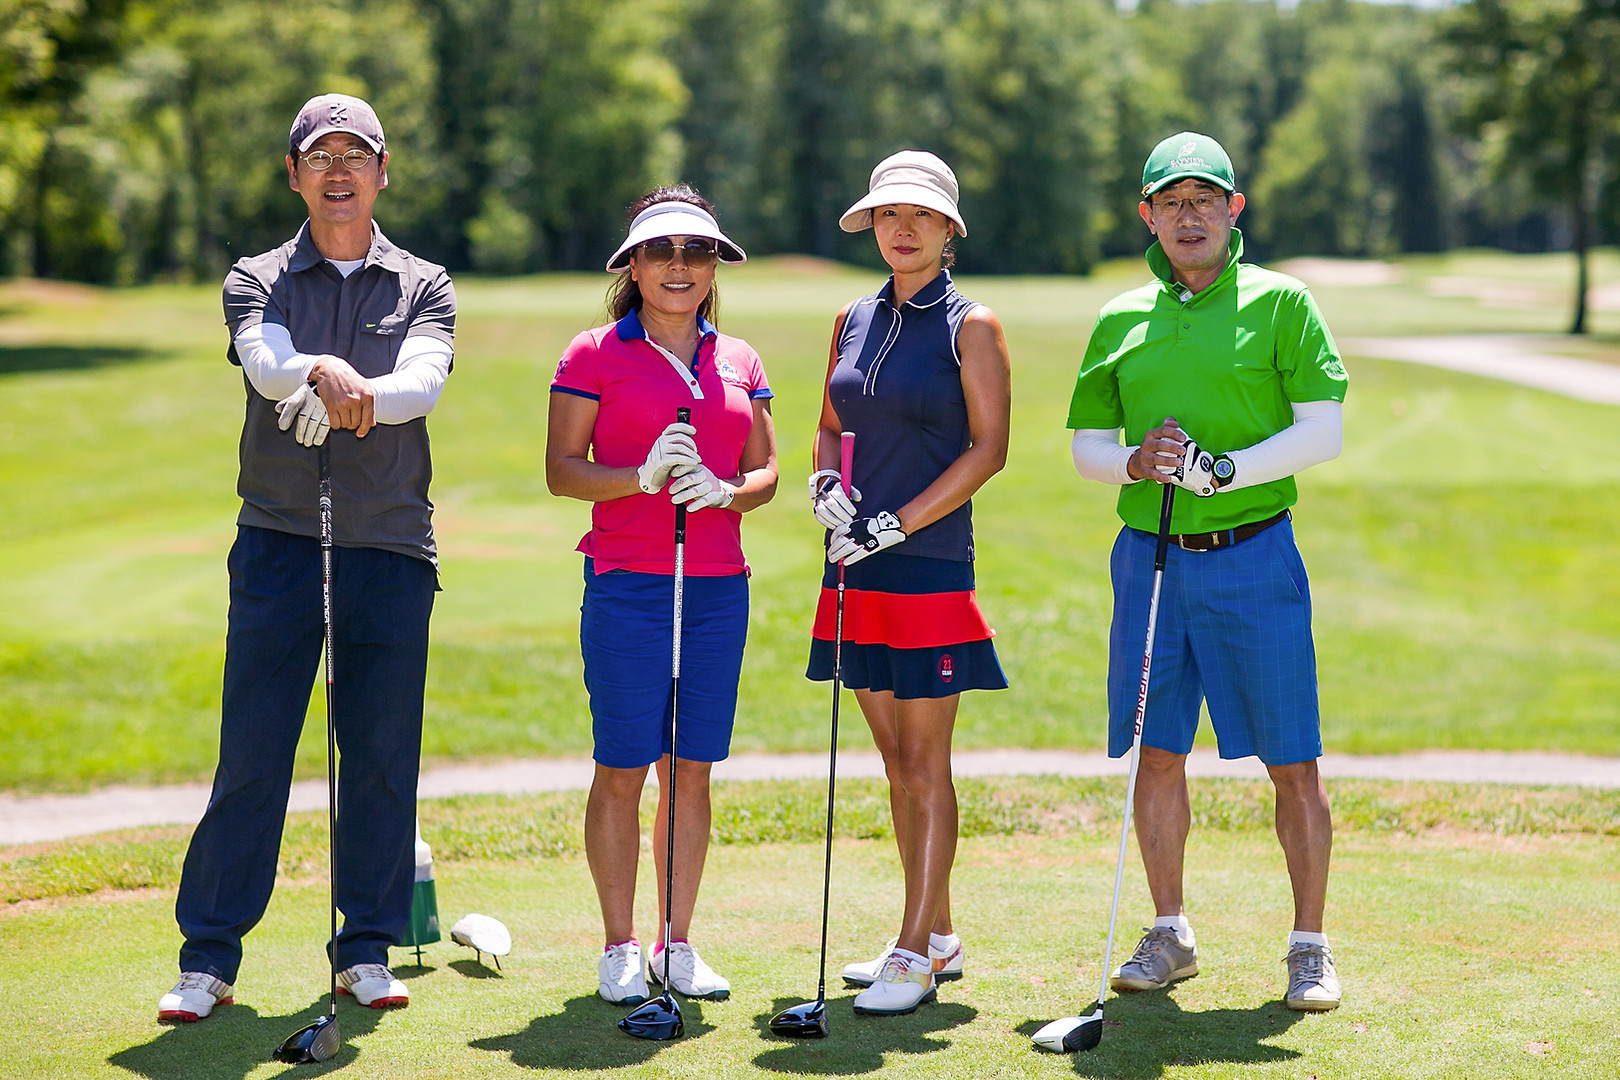 A selection of images of golf tournaments that have taken place at Silver Lakes Golf and Country Club in East Gwillimbury, Ontario